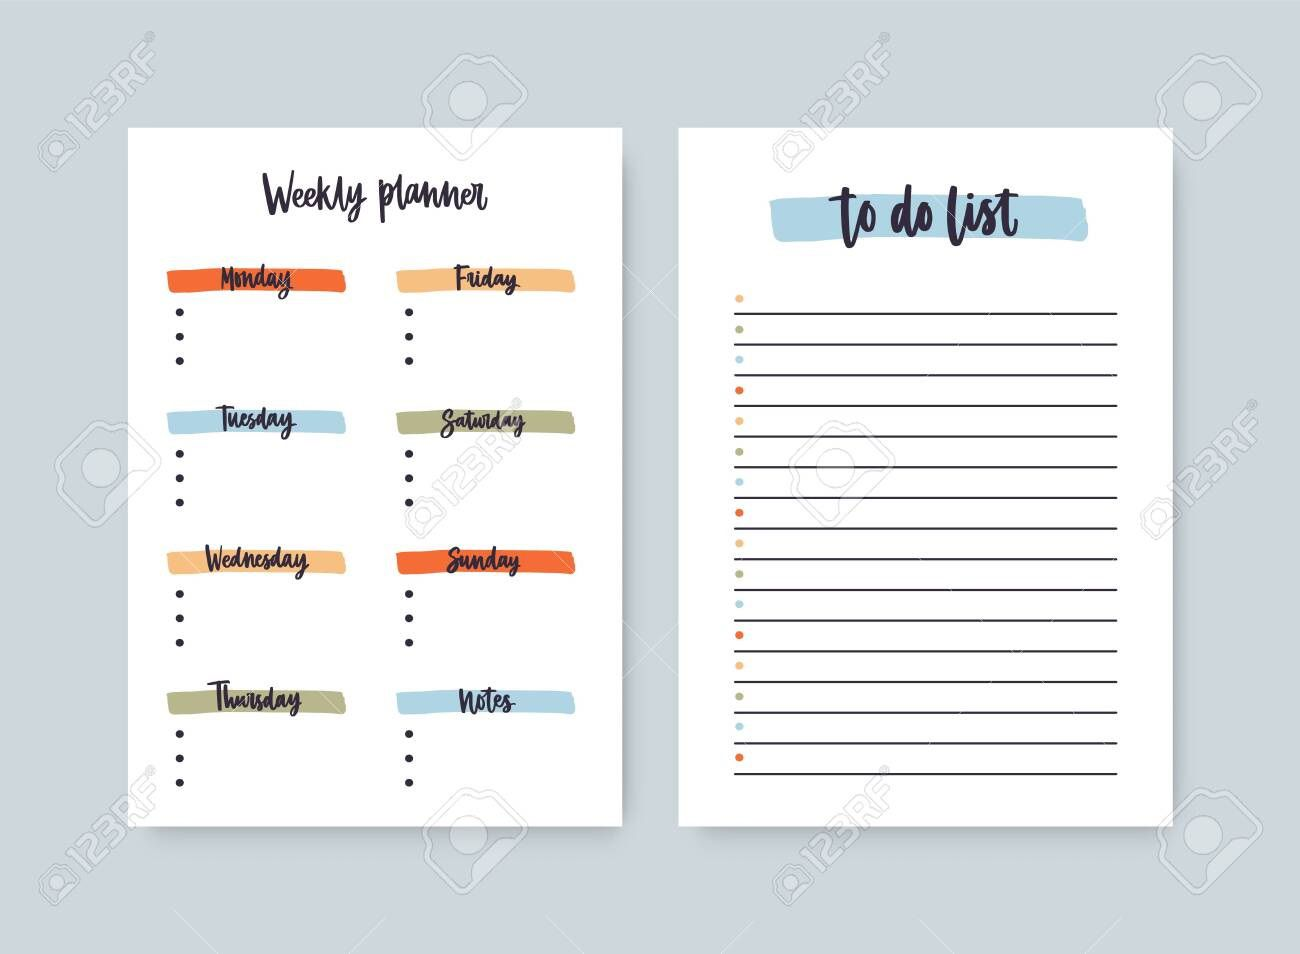 003 Stunning Daily To Do List Template Sample  Templates FreeFull